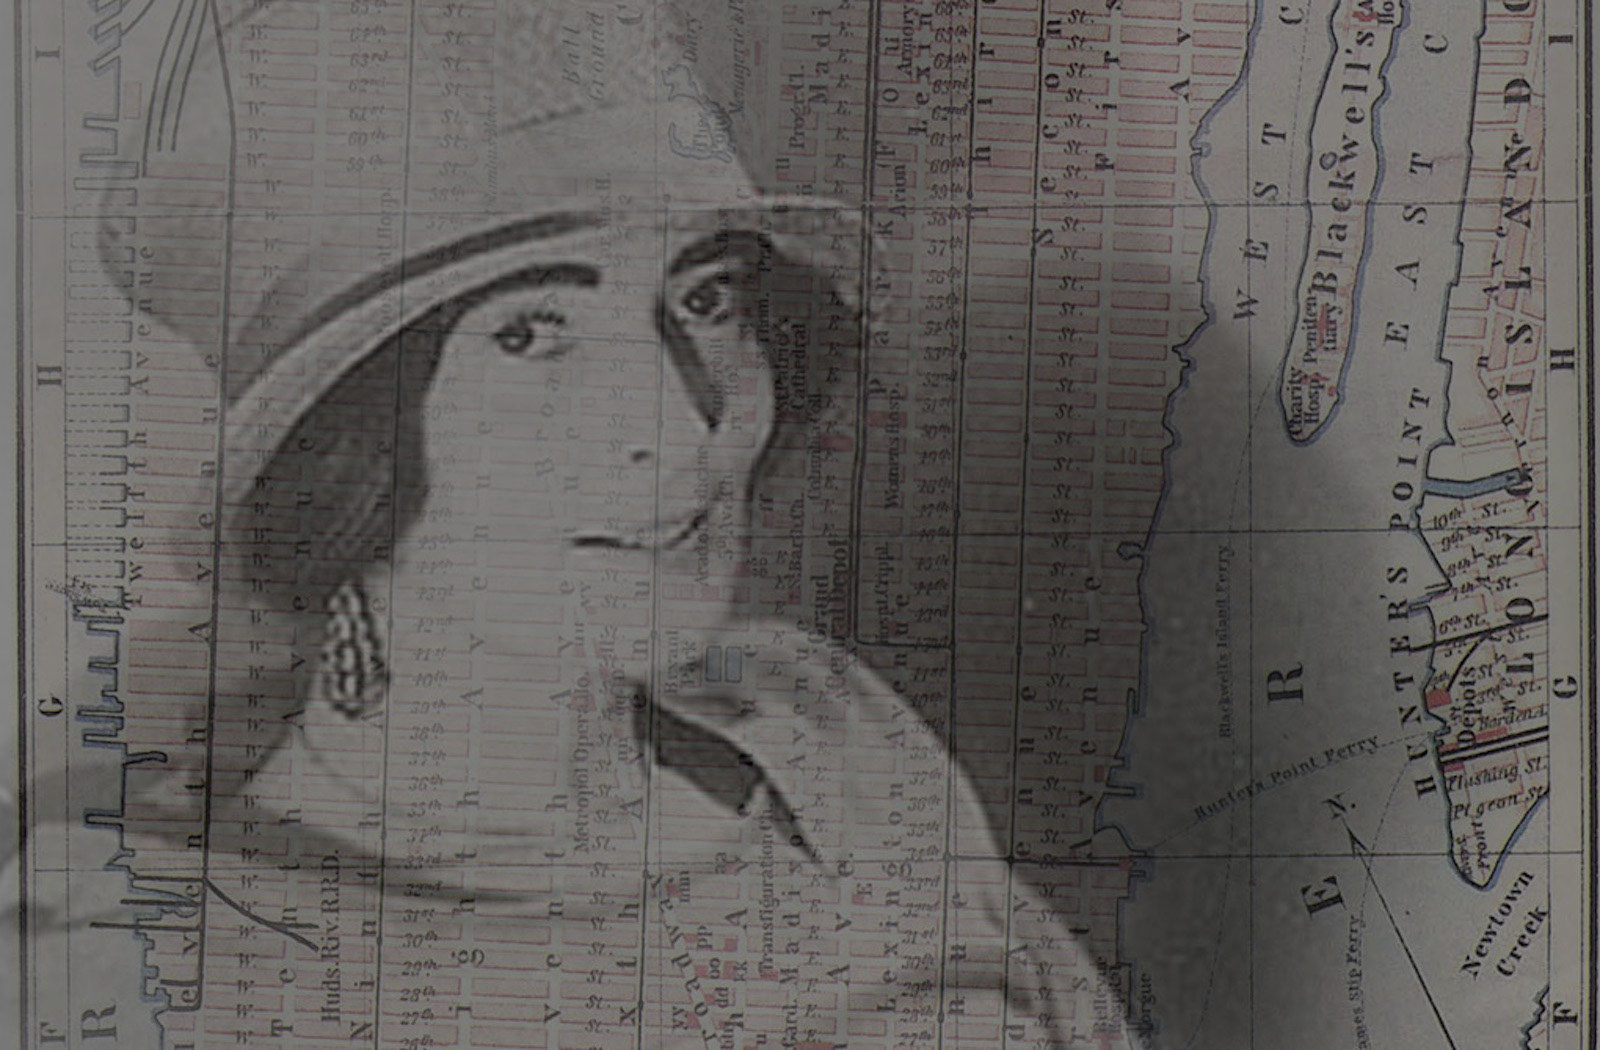 Mina Loy with overlaid parallax map of New York City